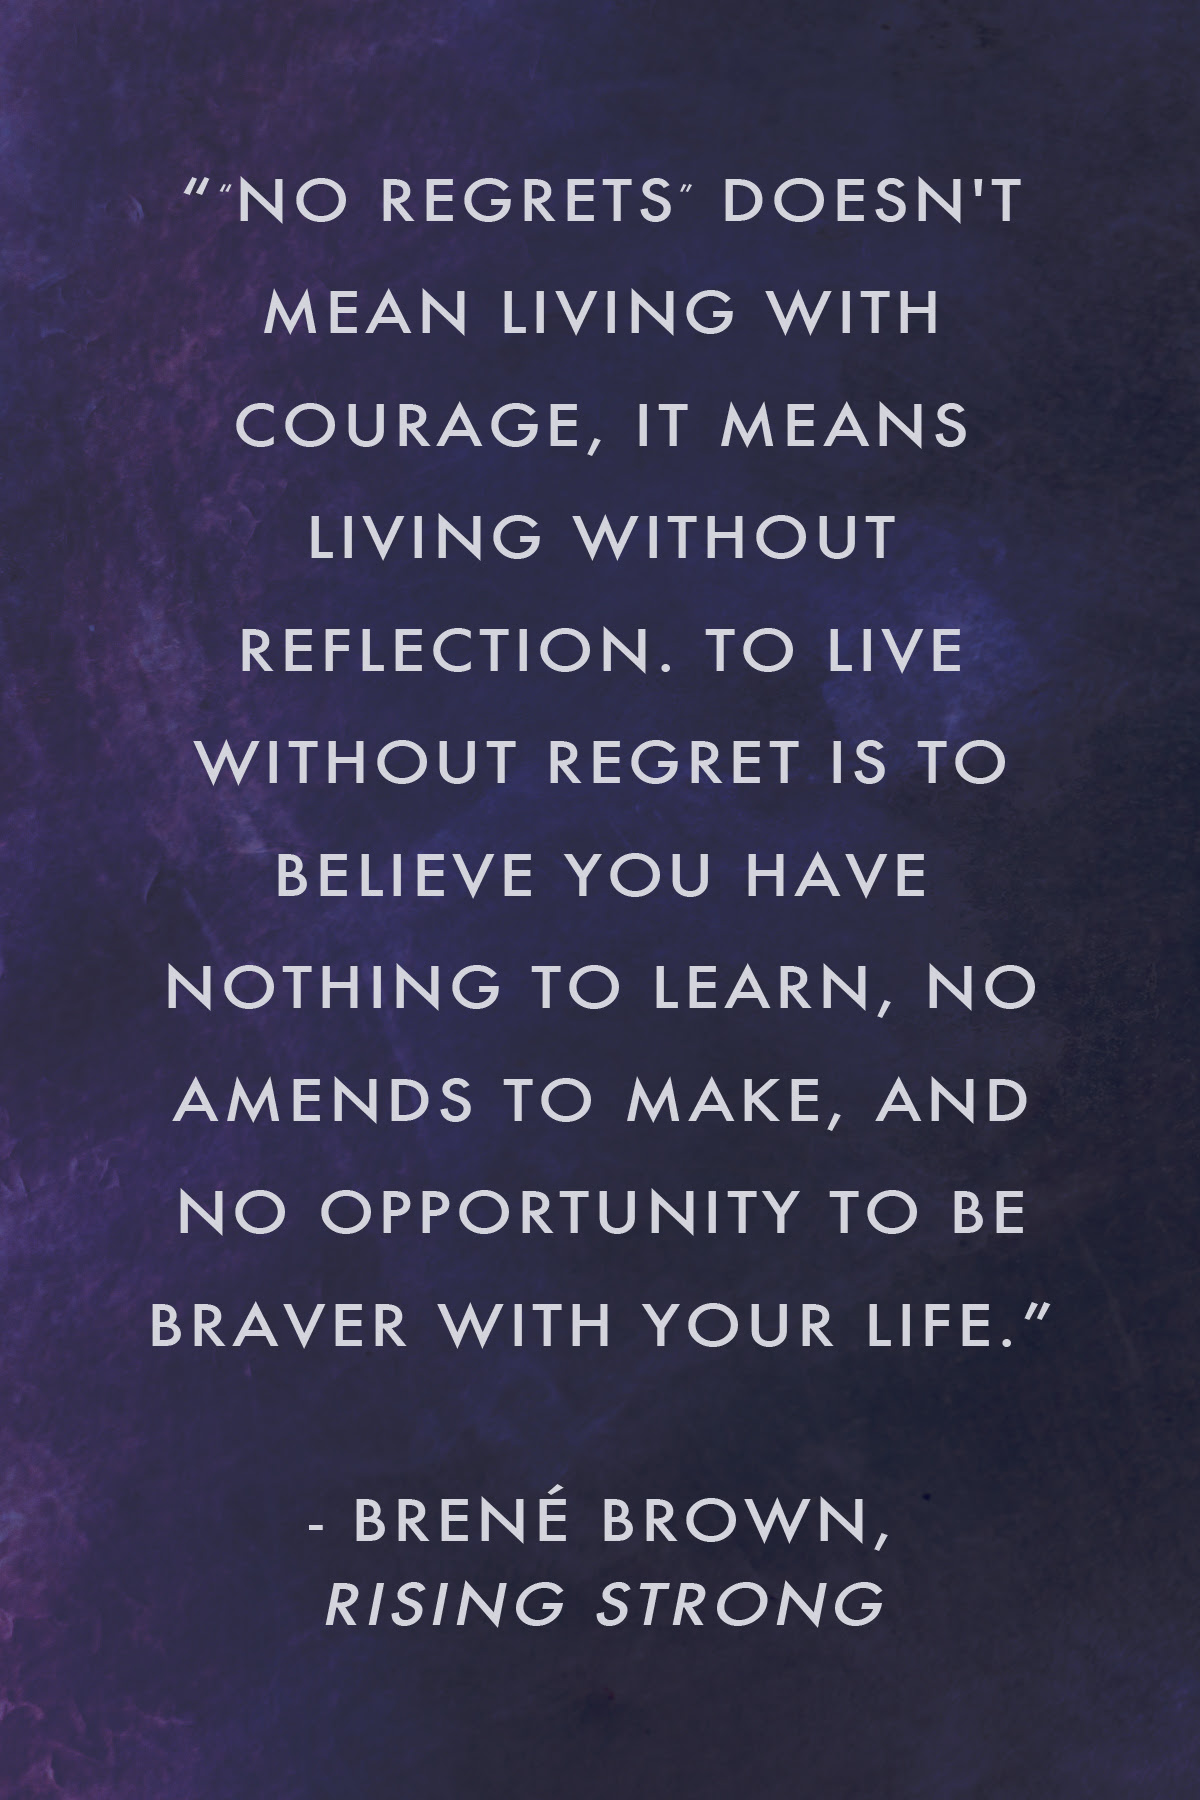 Brené Brown On Regret Quotes From Rising Strong